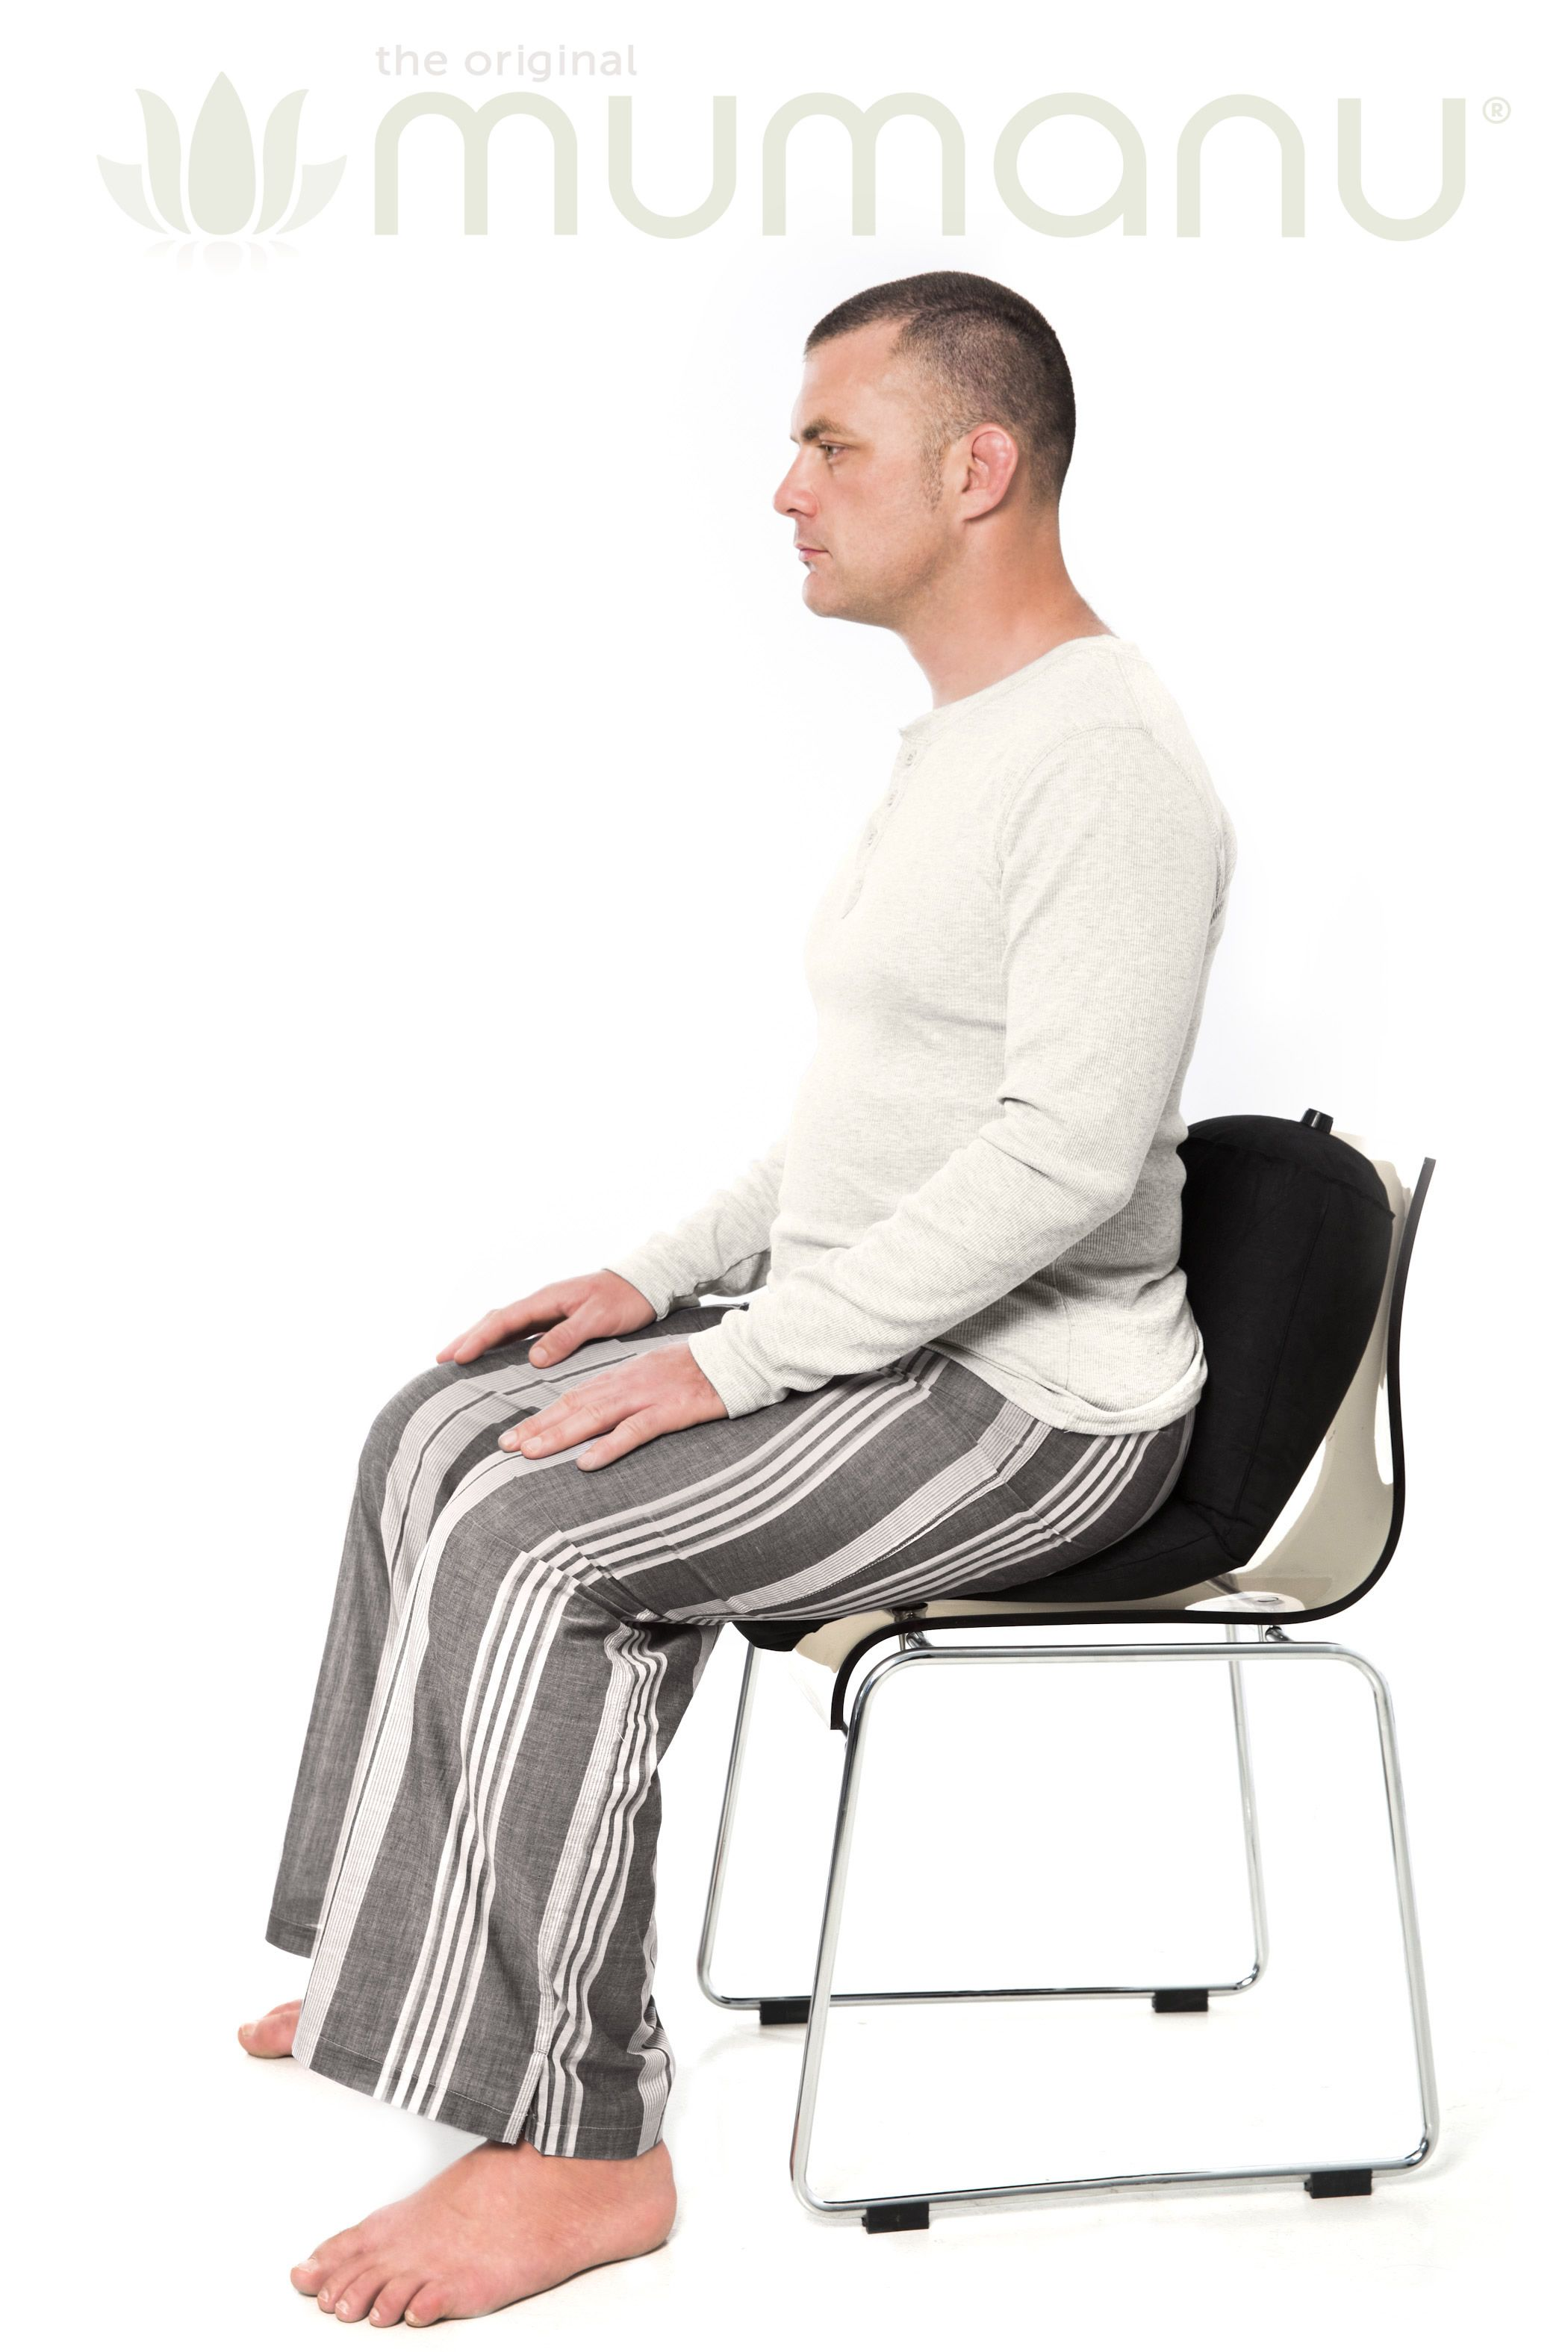 You can use the Mumanu Pillow while sitting at your desk